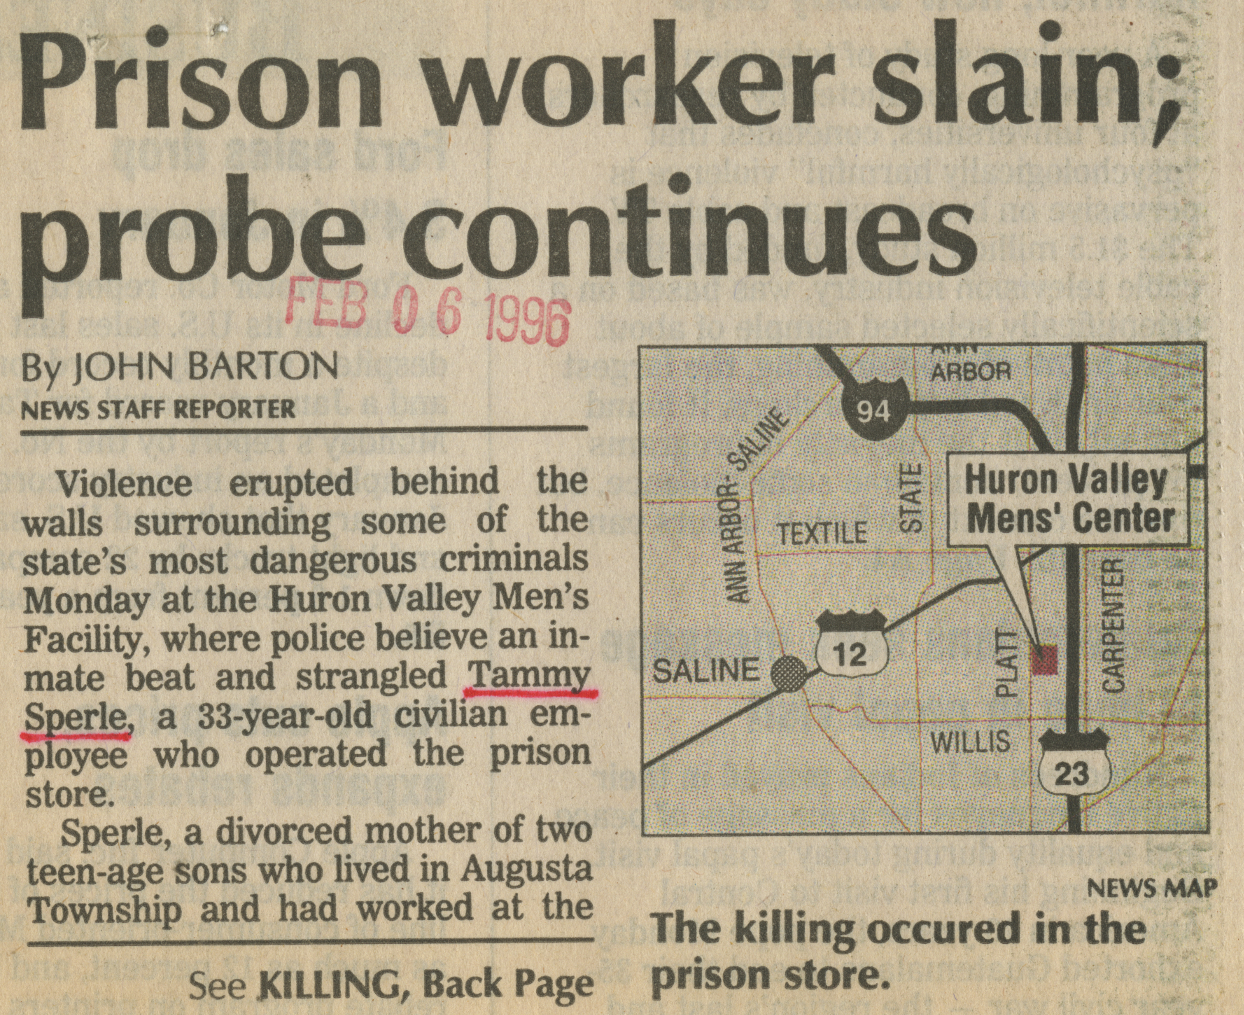 Prison worker slain; probe continues image